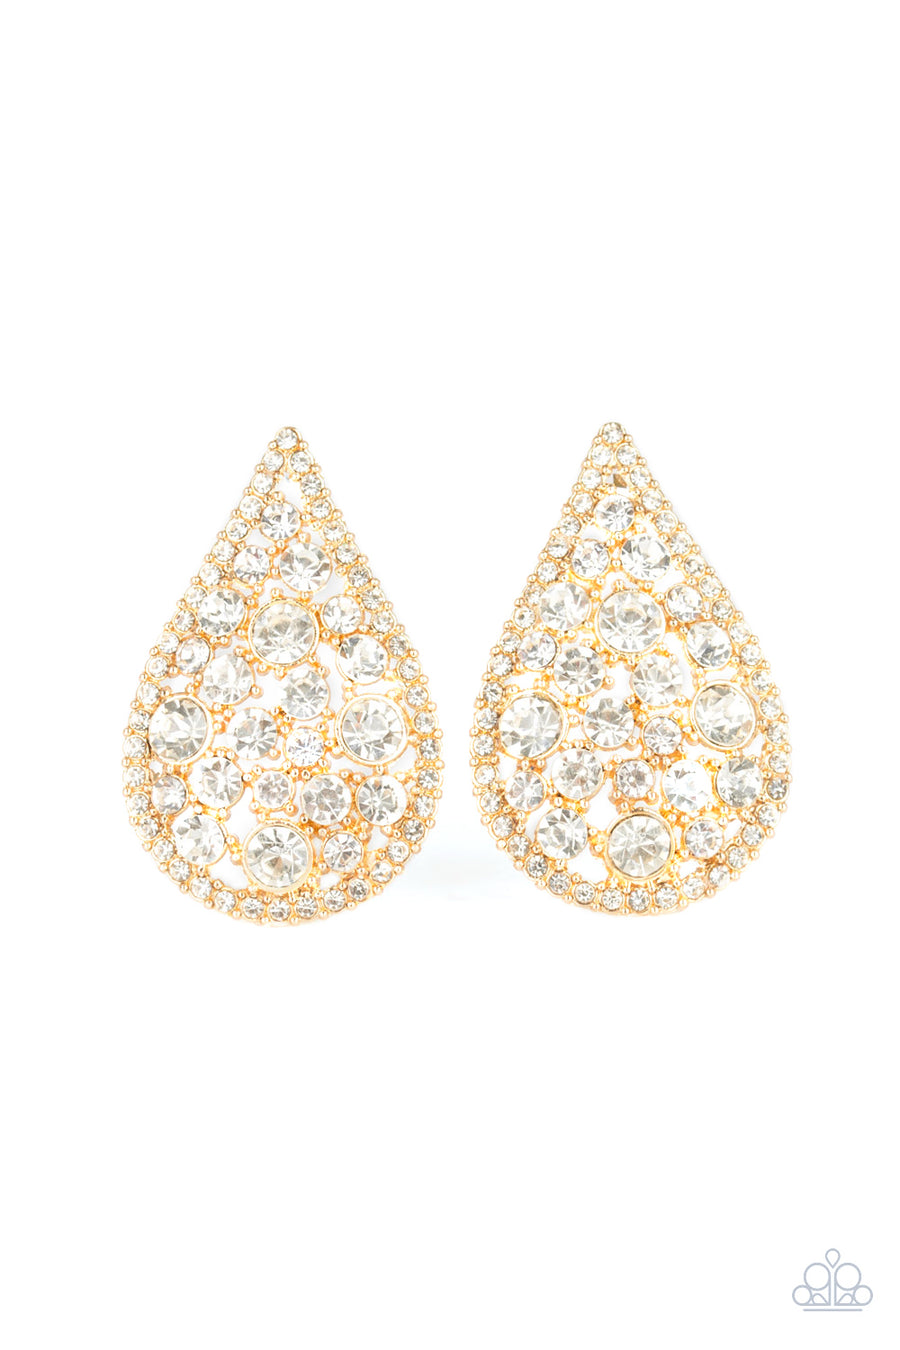 REIGN Storm - Gold Earrings